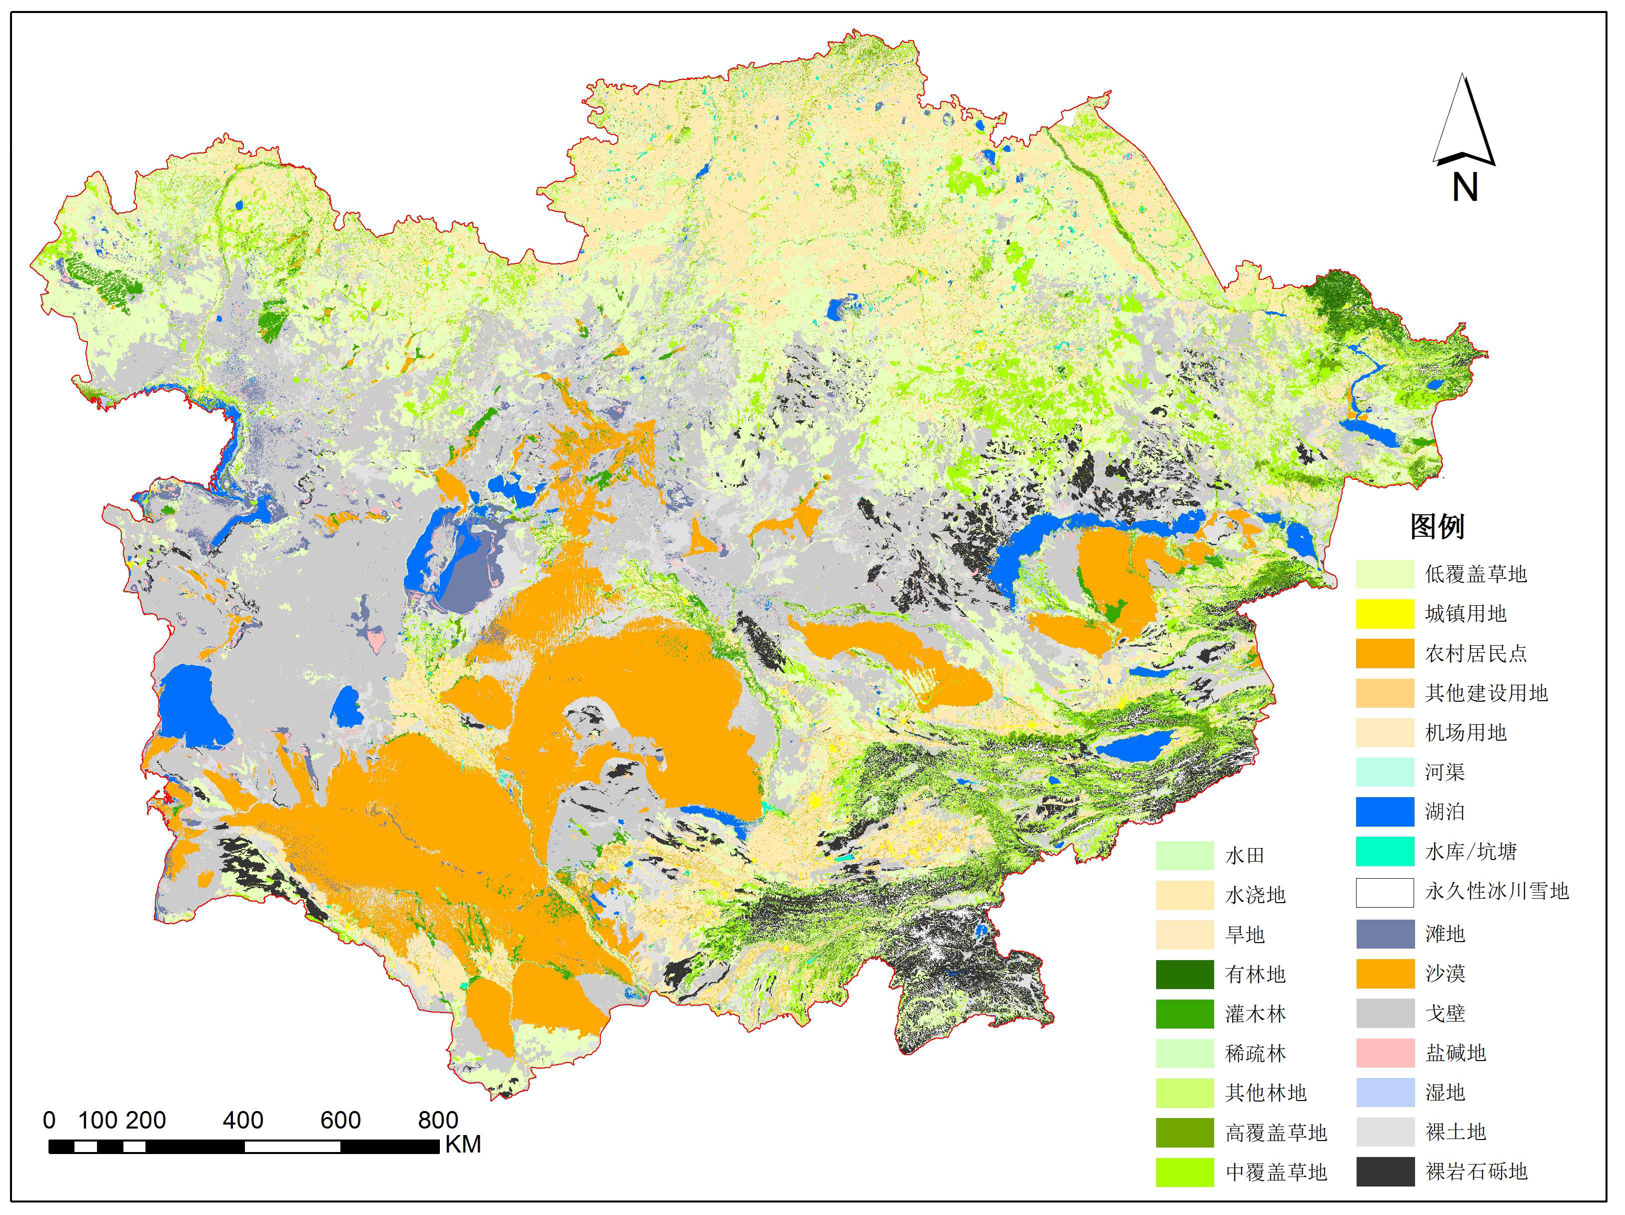 Thematic data on desertification (land desertification, salinization and vegetation degradation) in central Asia (2015)